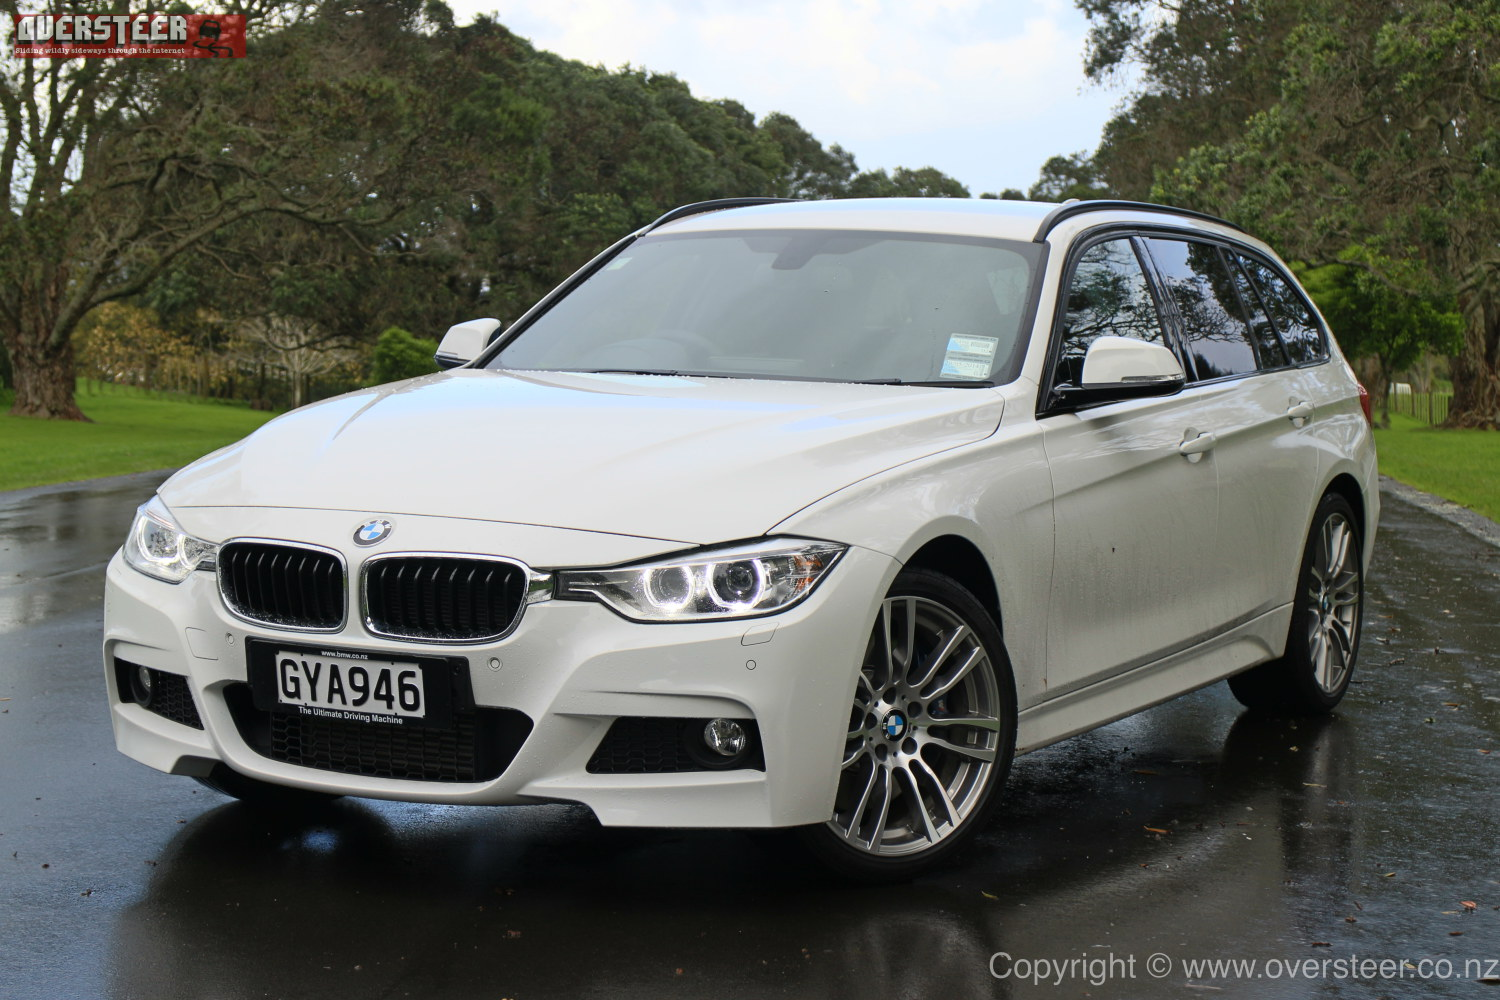 ROAD TEST: BMW 330d Touring xDrive